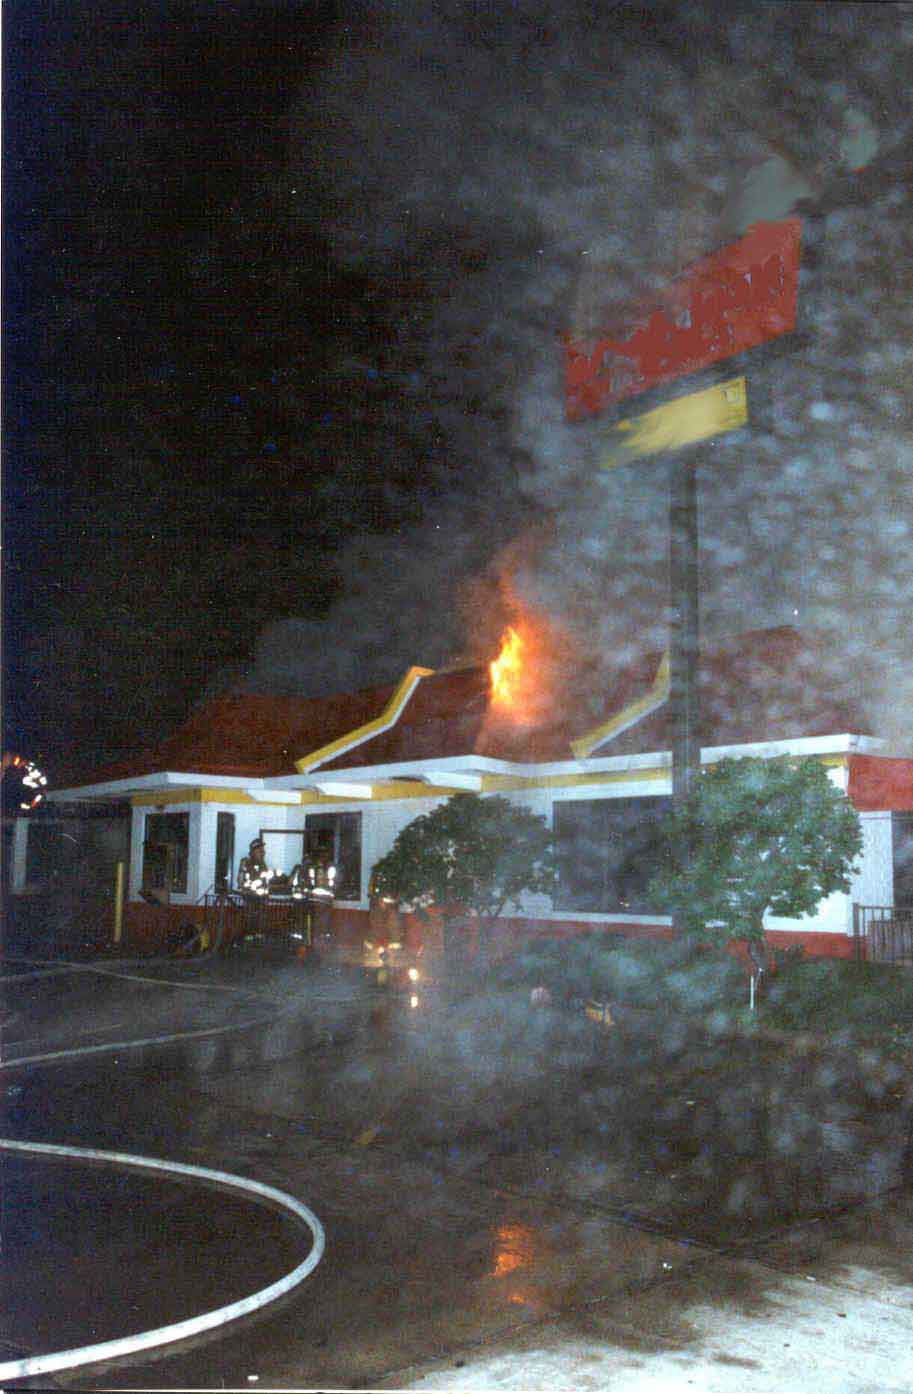 Photo 5: Exterior view of the restaurant during the early stages of the fire.